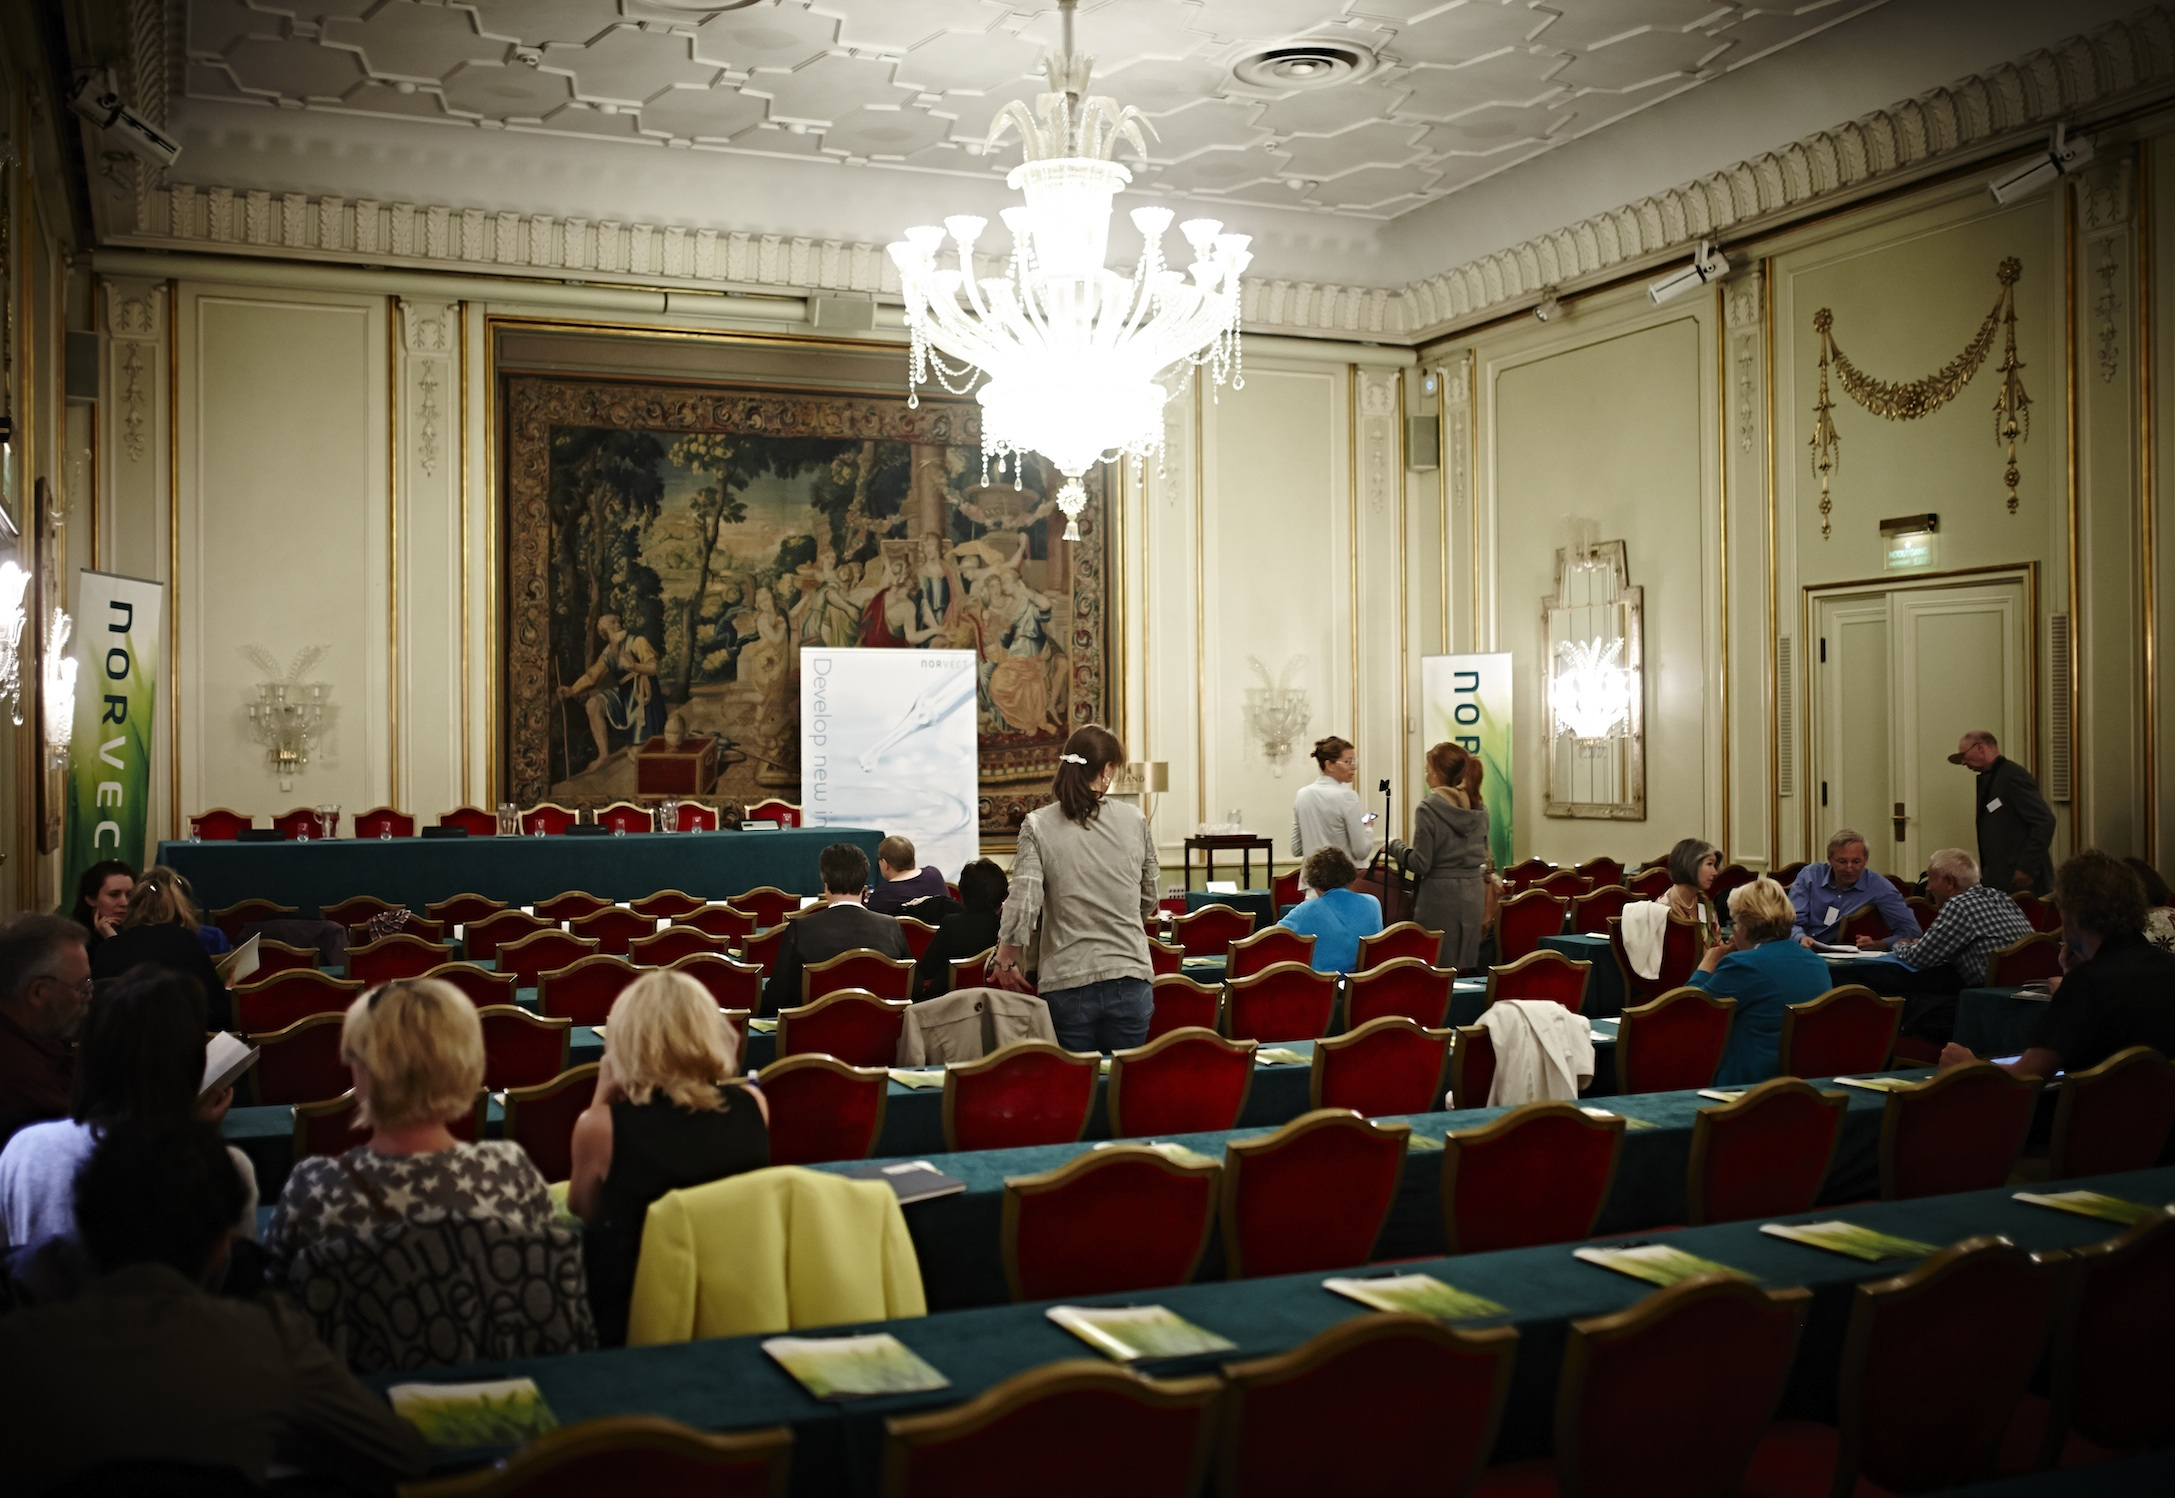 People are starting to arrive at the NorVect conference 2014